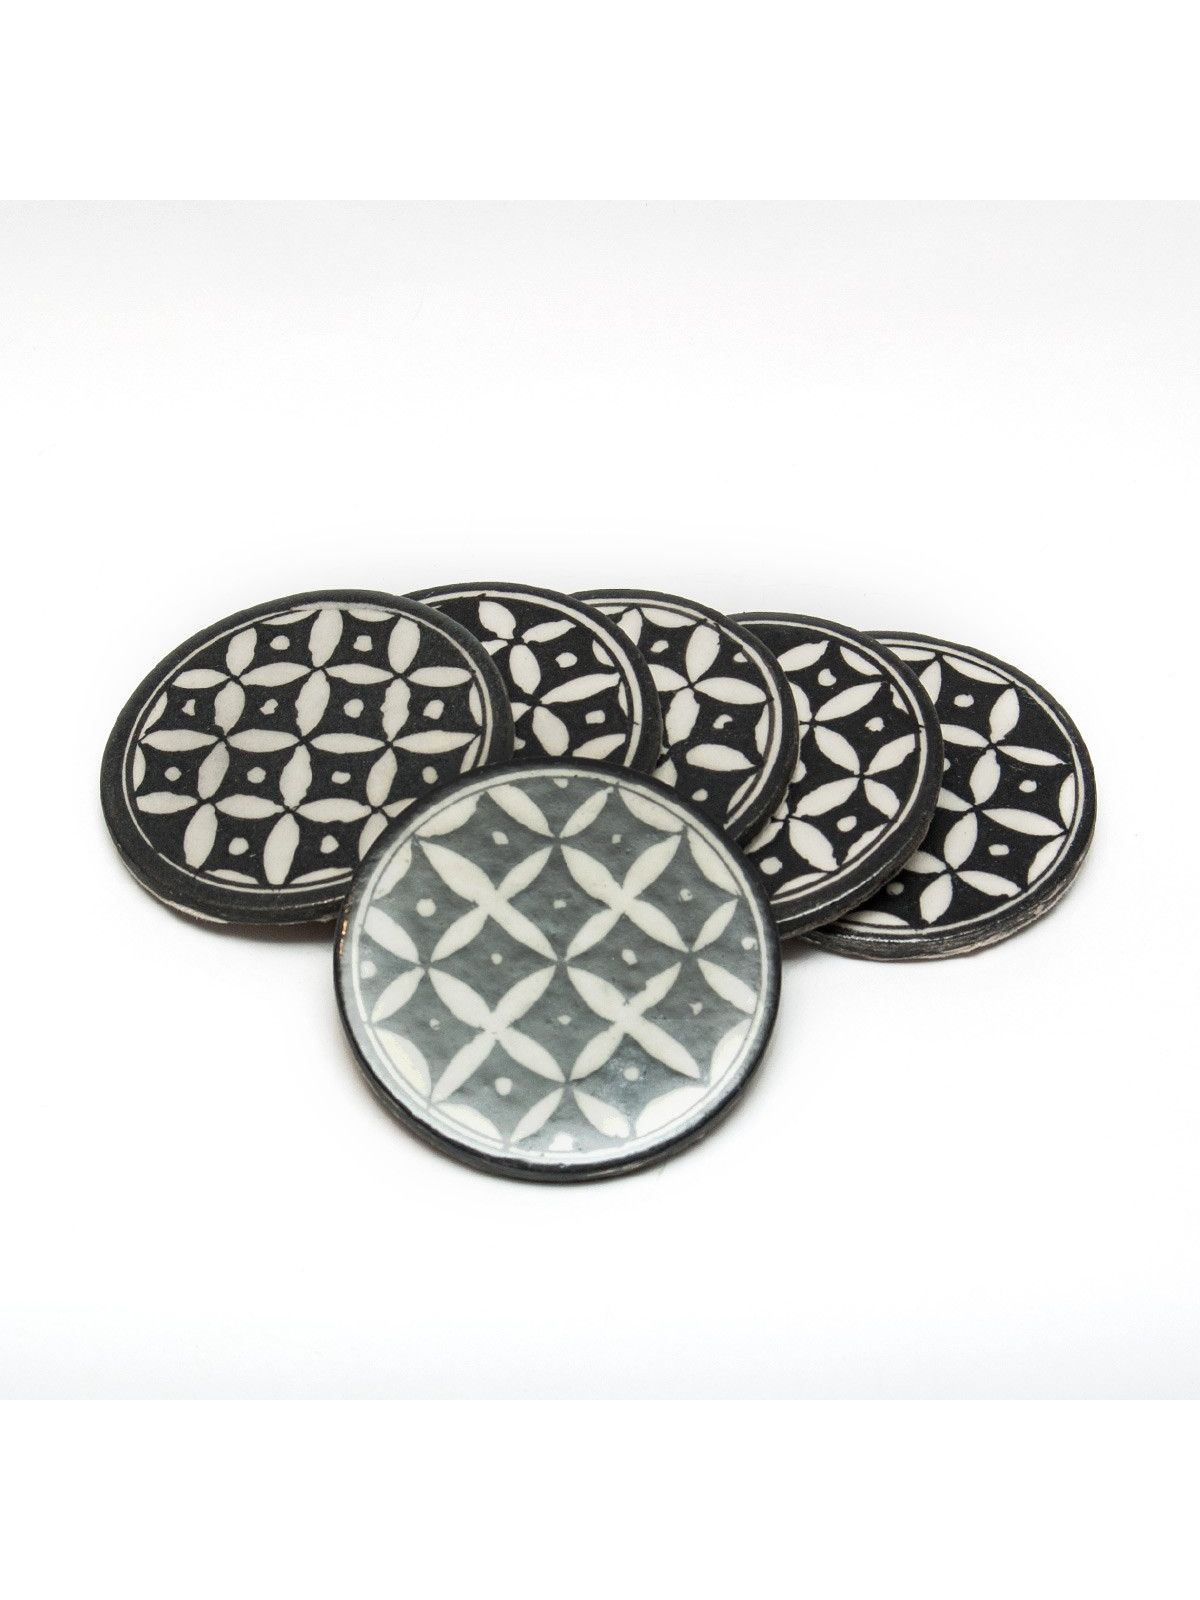 Black Ceramic Coasters - Set of Five - 3.5 Inches Diameter